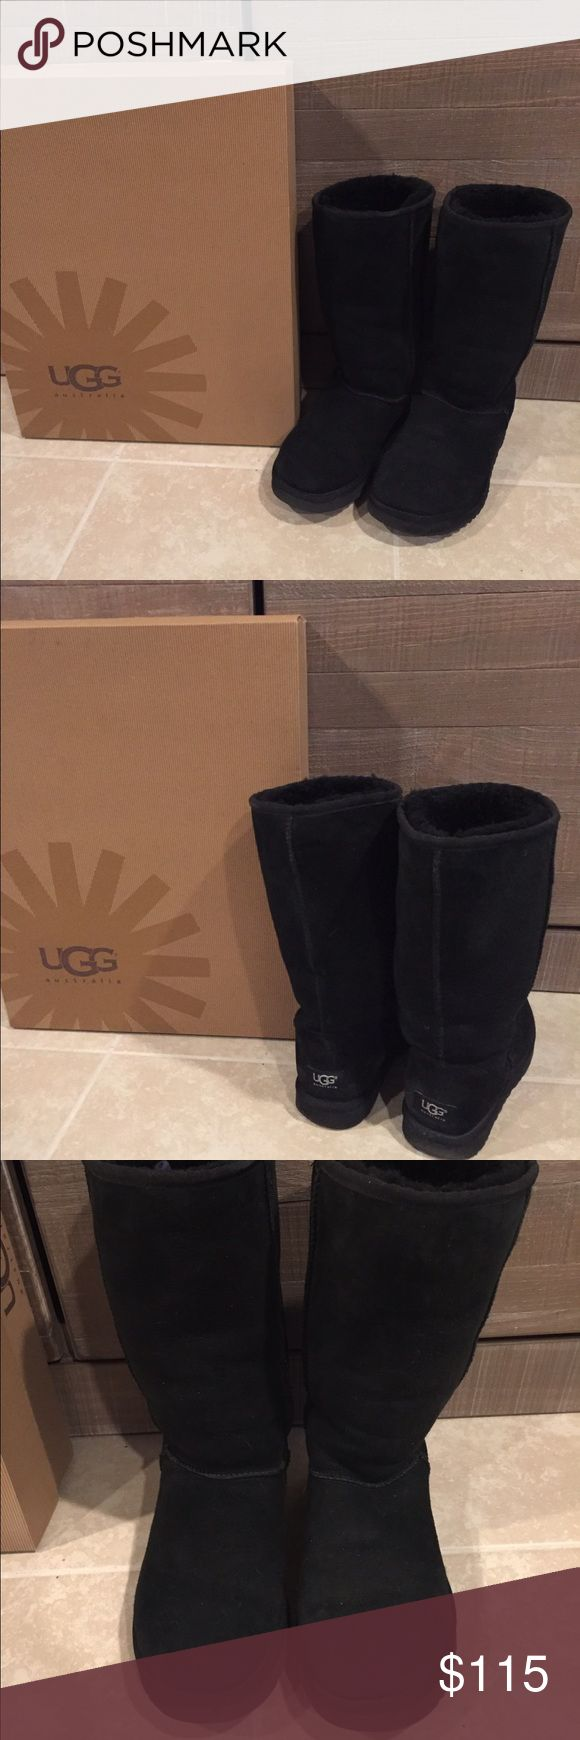 Classic Tall UGG Boots-Black Classic Tall UGG Boots-Black these are in excellent Used condition. No stains! UGG Shoes Winter & Rain Boots